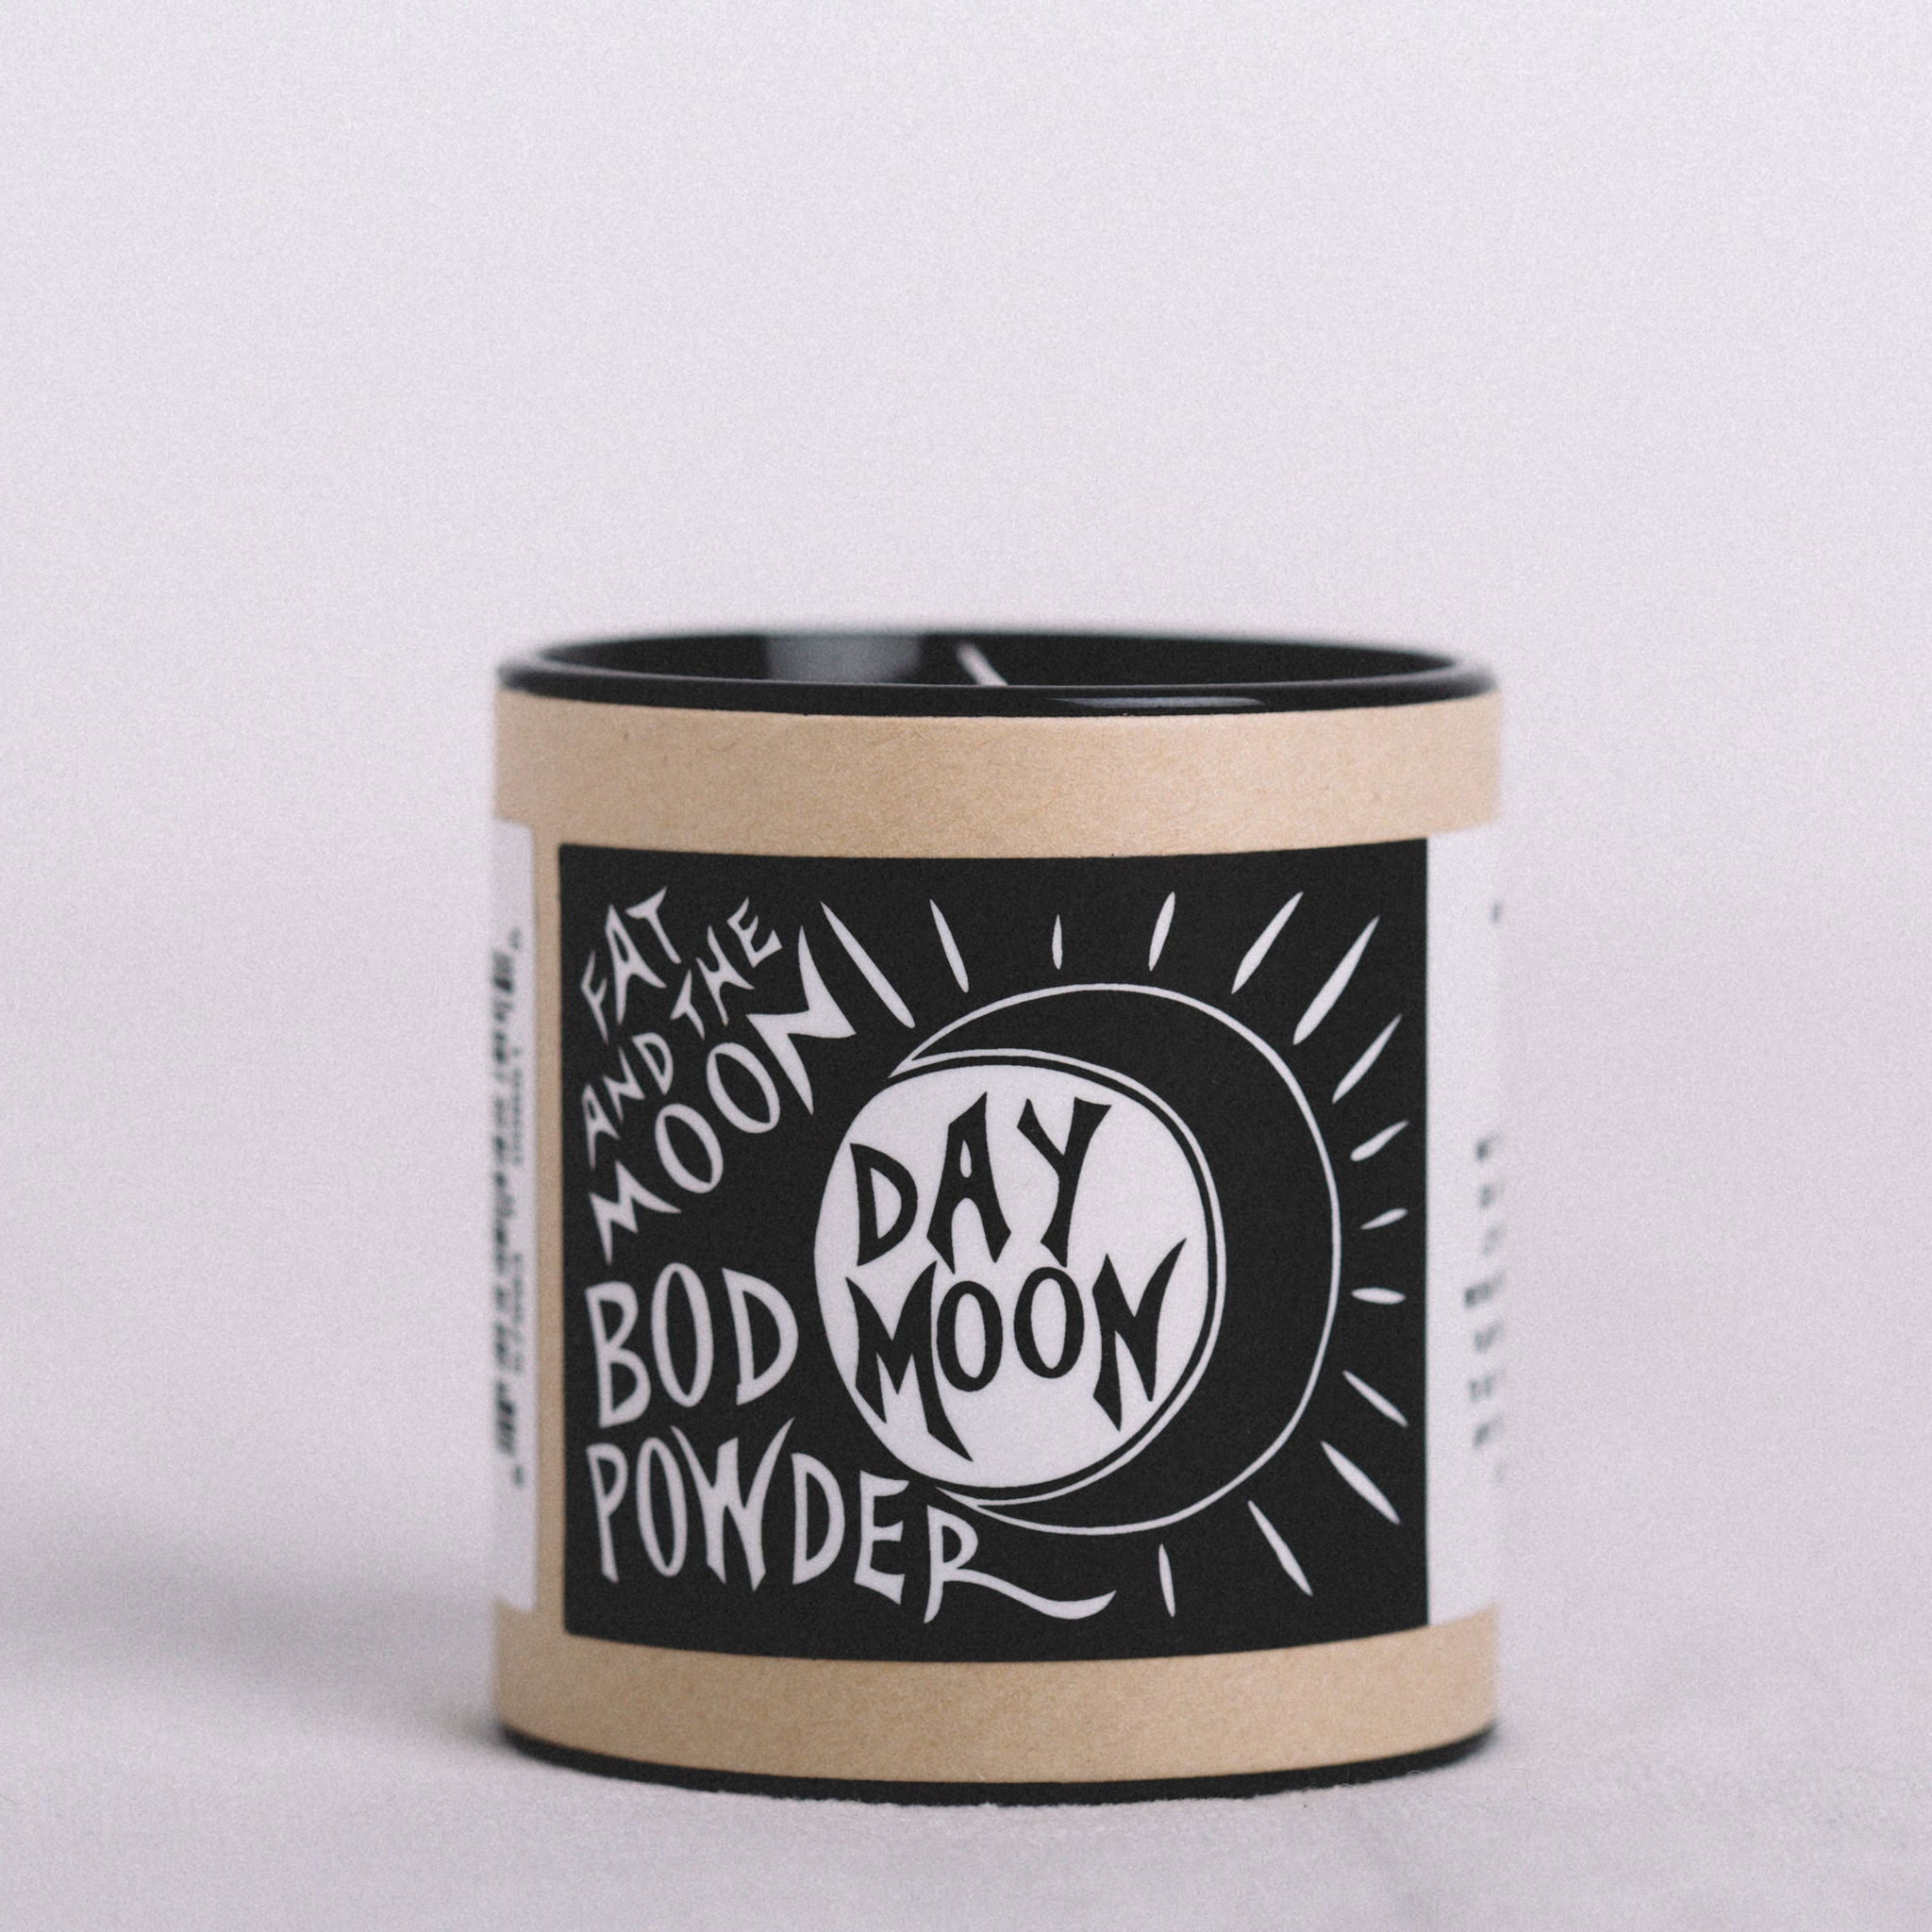 FAT AND THE MOON || BOD POWDER